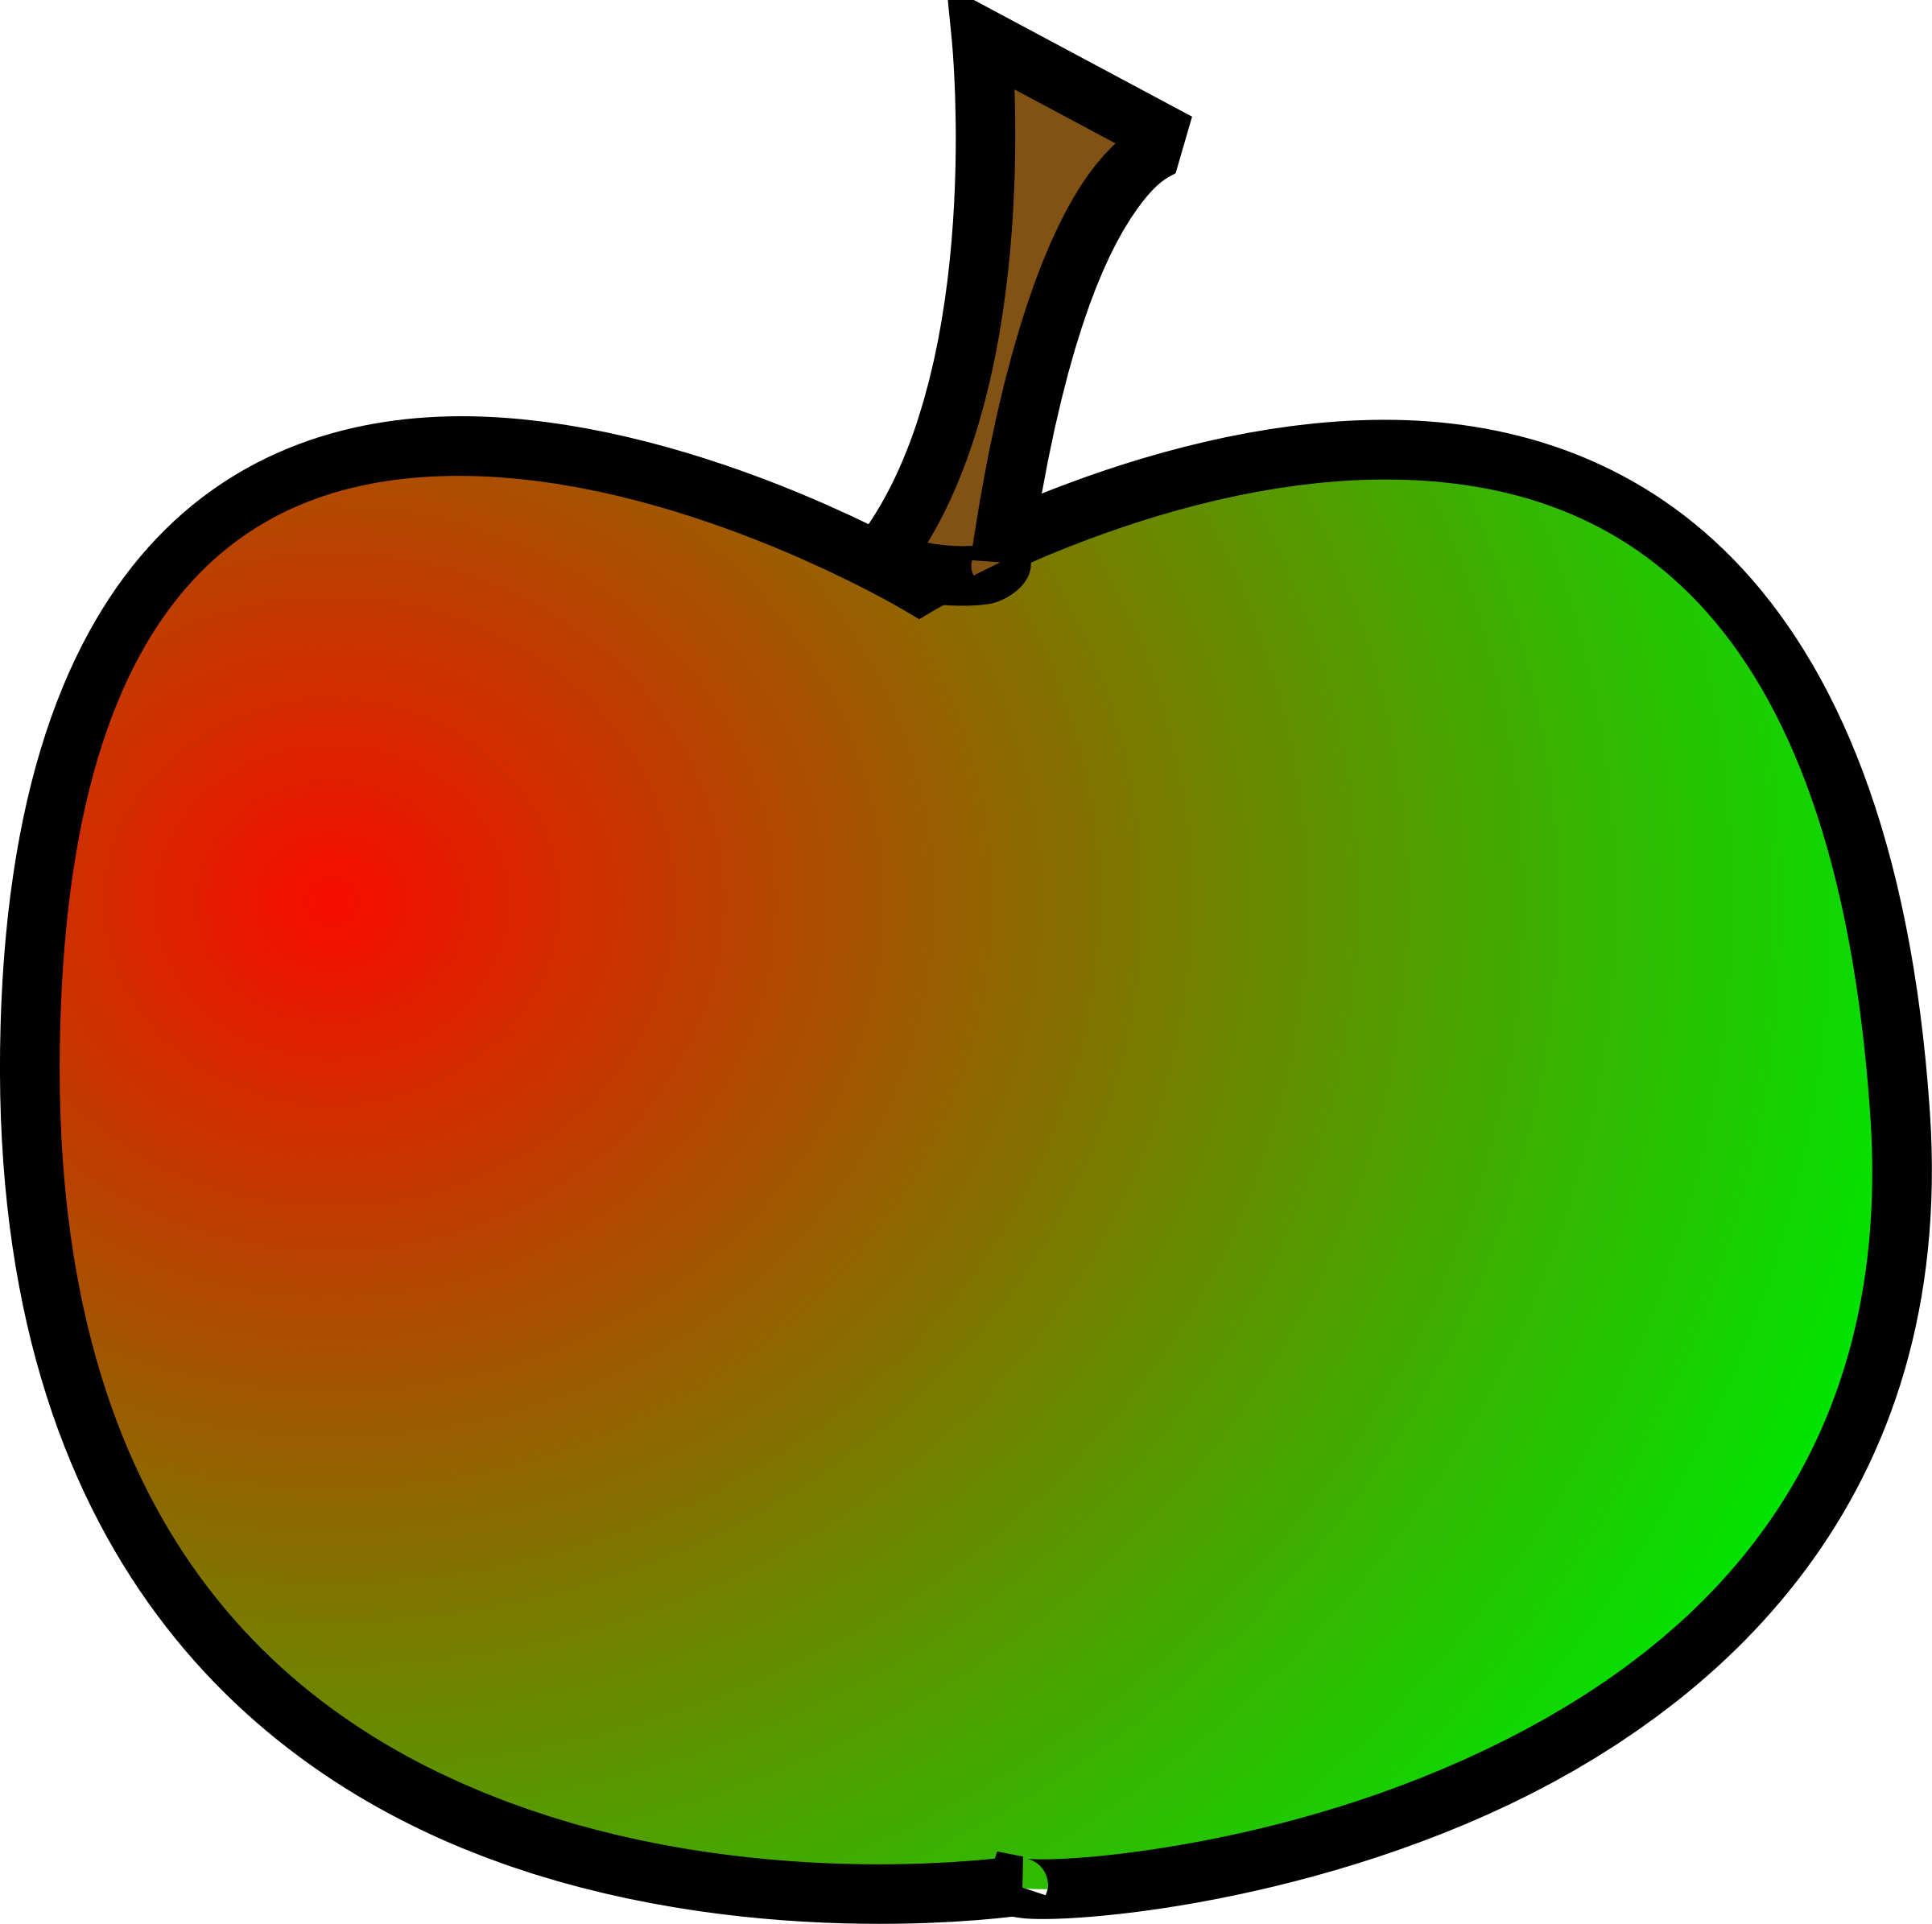 Transparent apples clipart - Apple Green Red - Cartoon Red And Green Apple